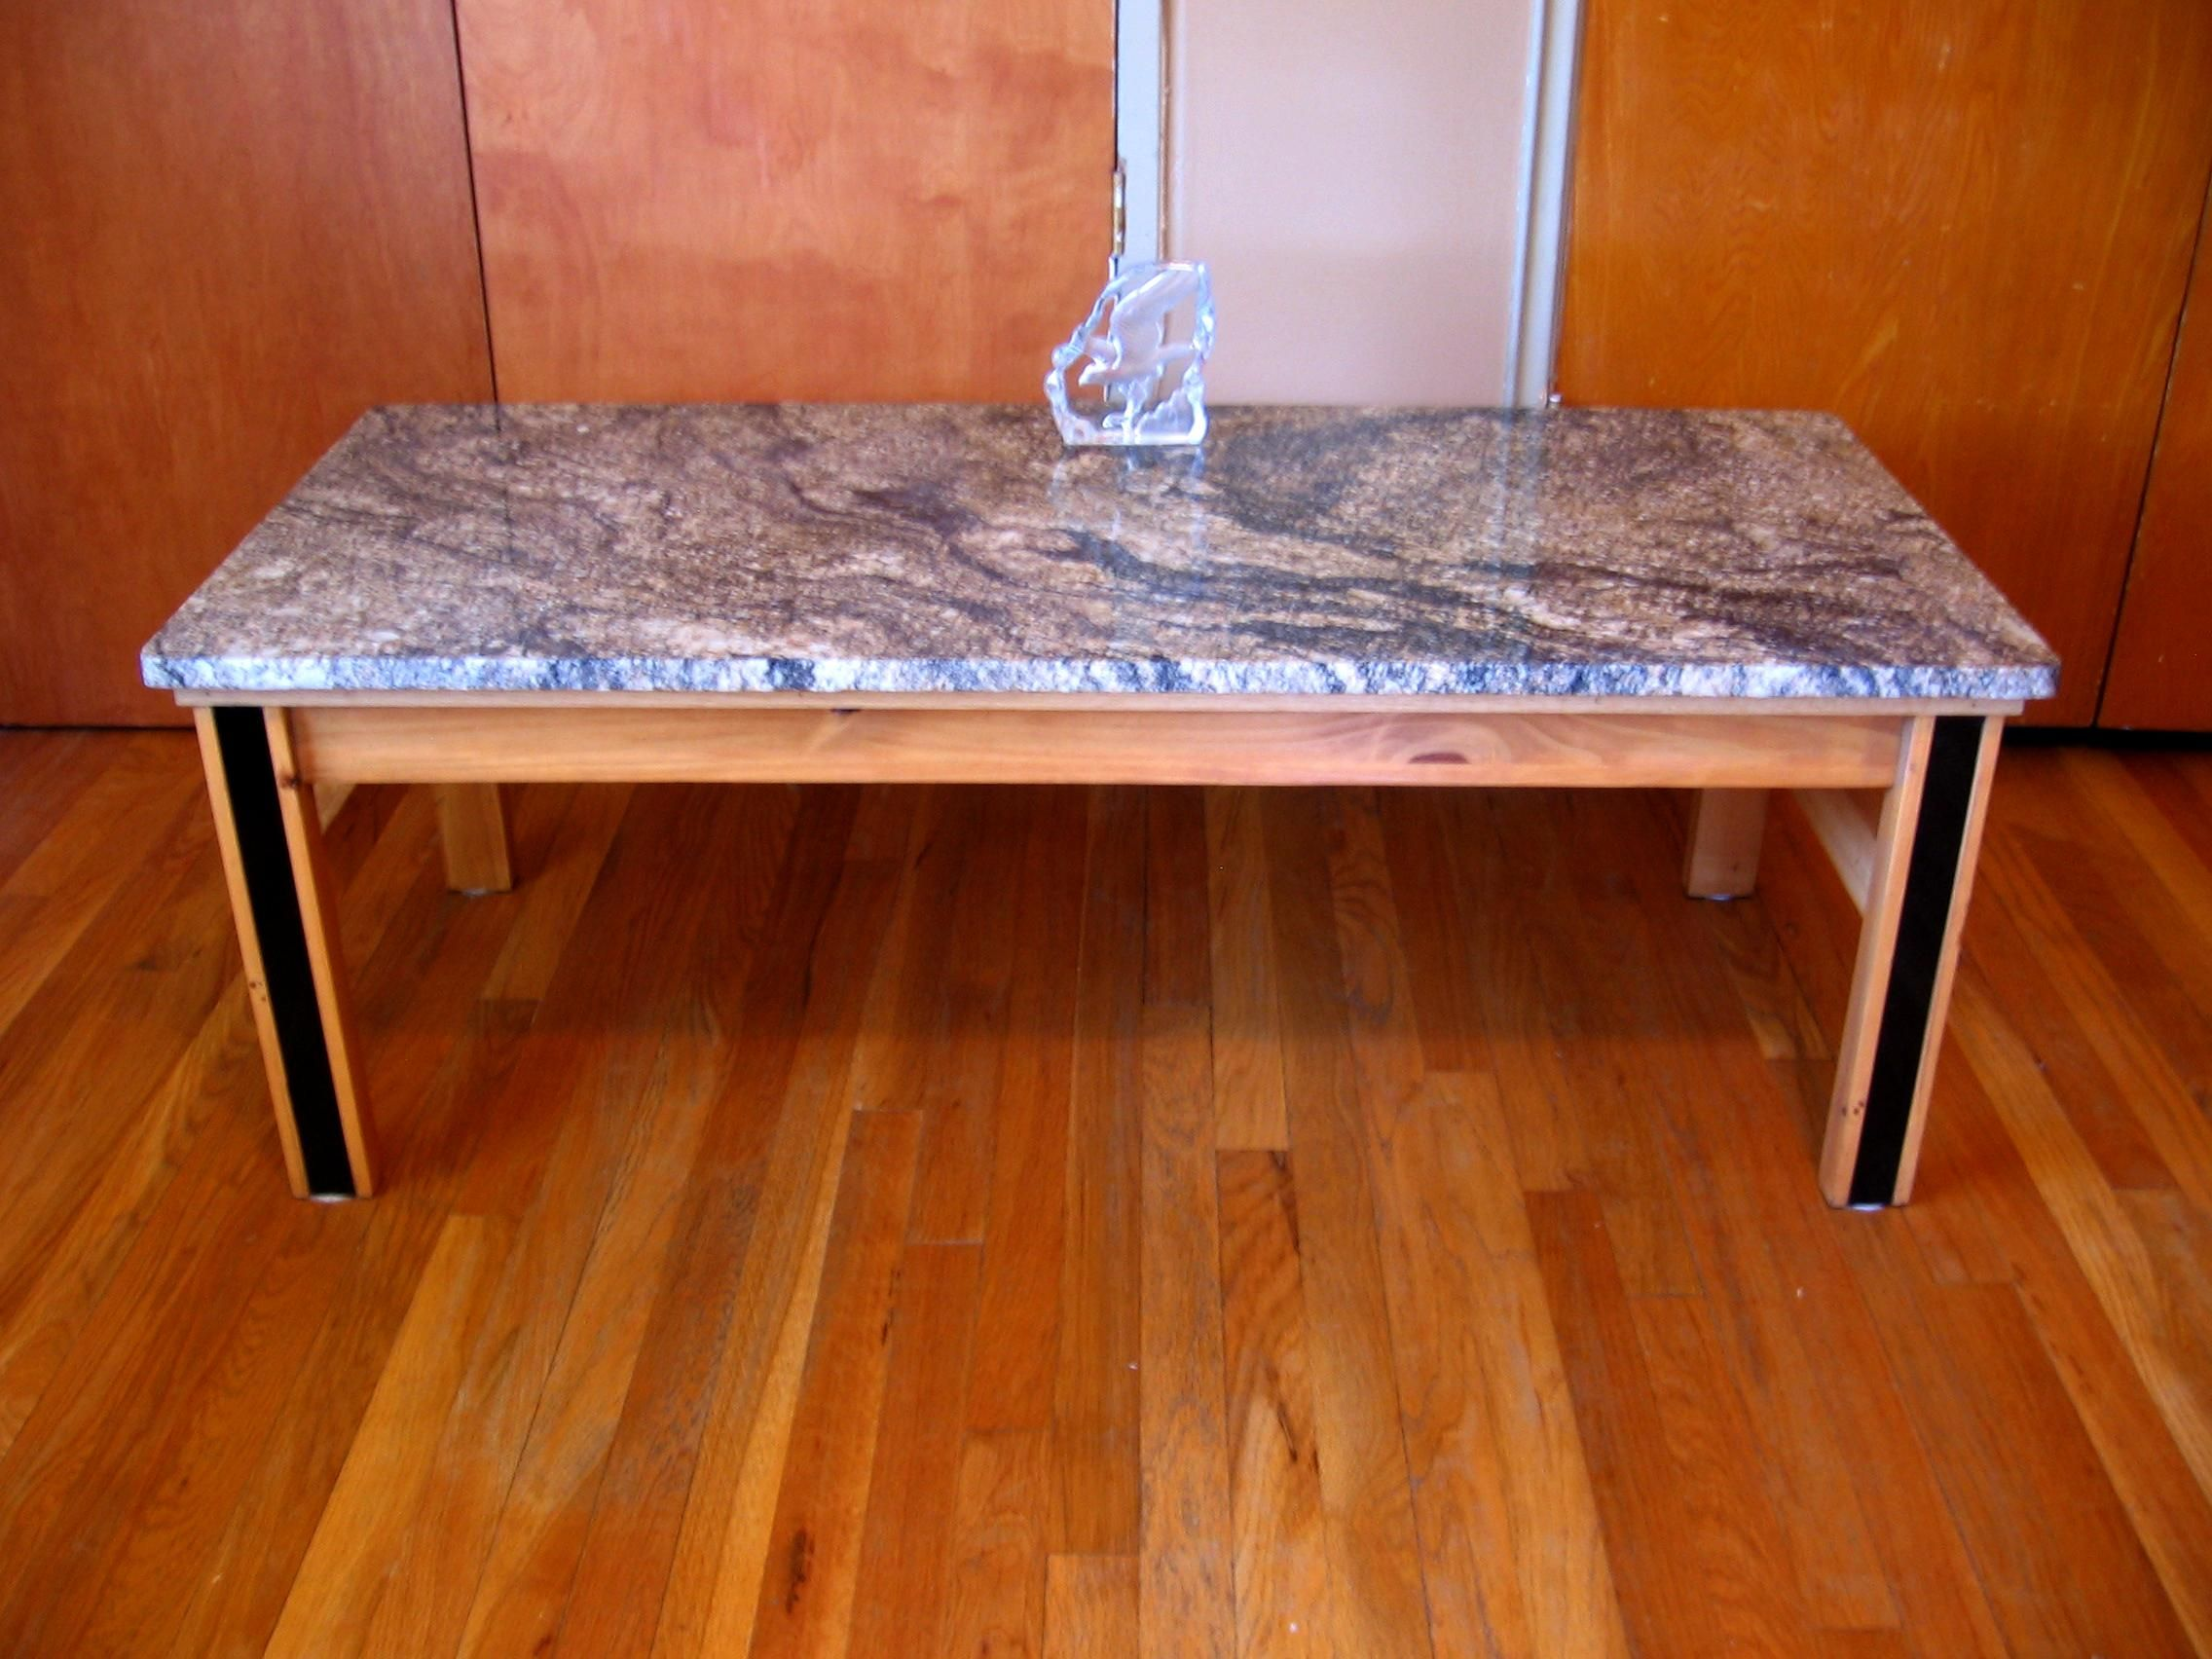 You can use our Instant Granite to reface an old Coffee Table